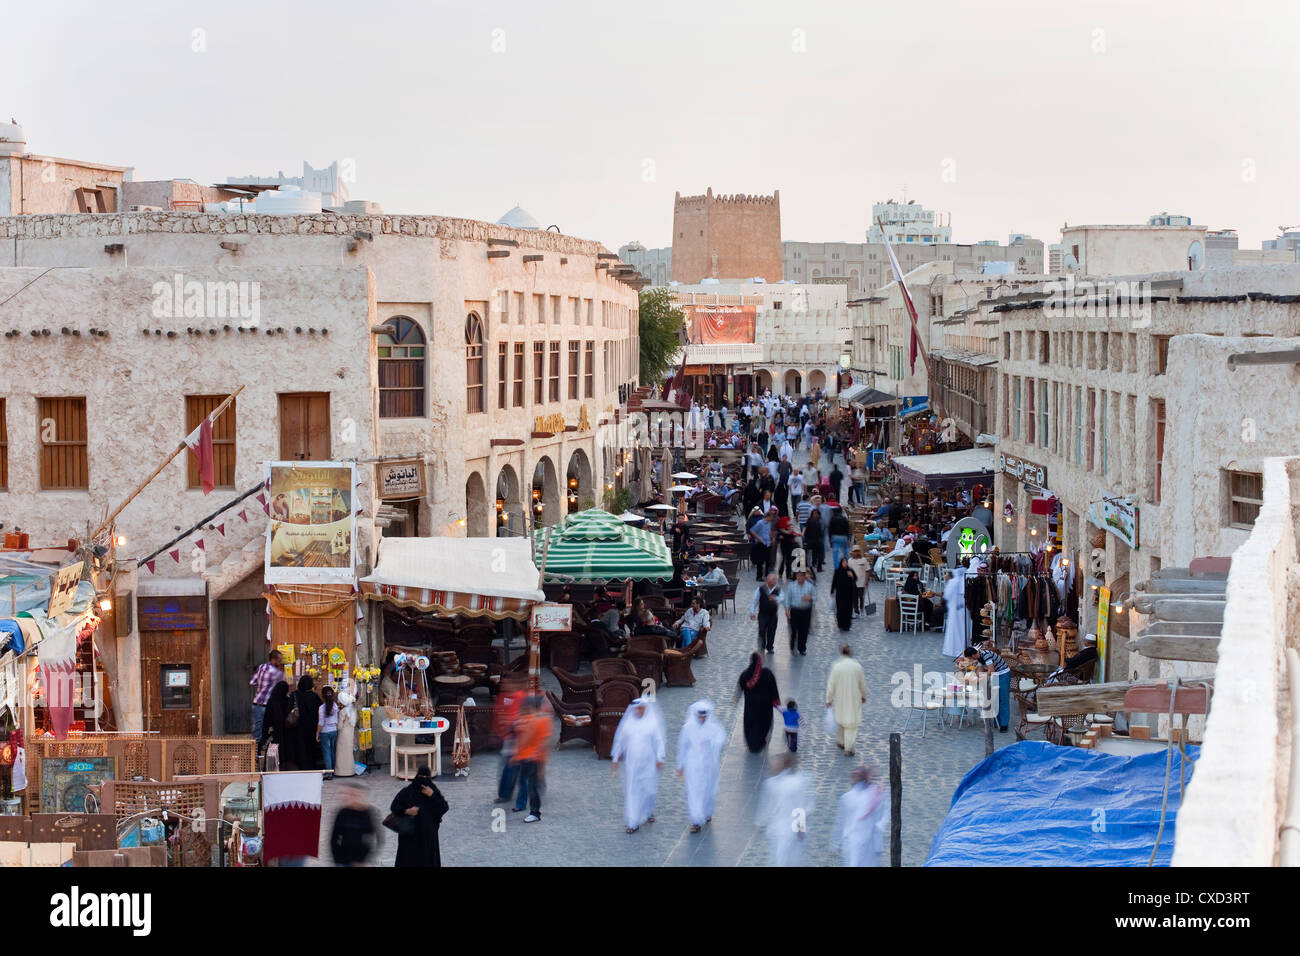 The restored Souq Waqif with mud rendered shops and exposed timber beams, Doha, Qatar, Middle East - Stock Image